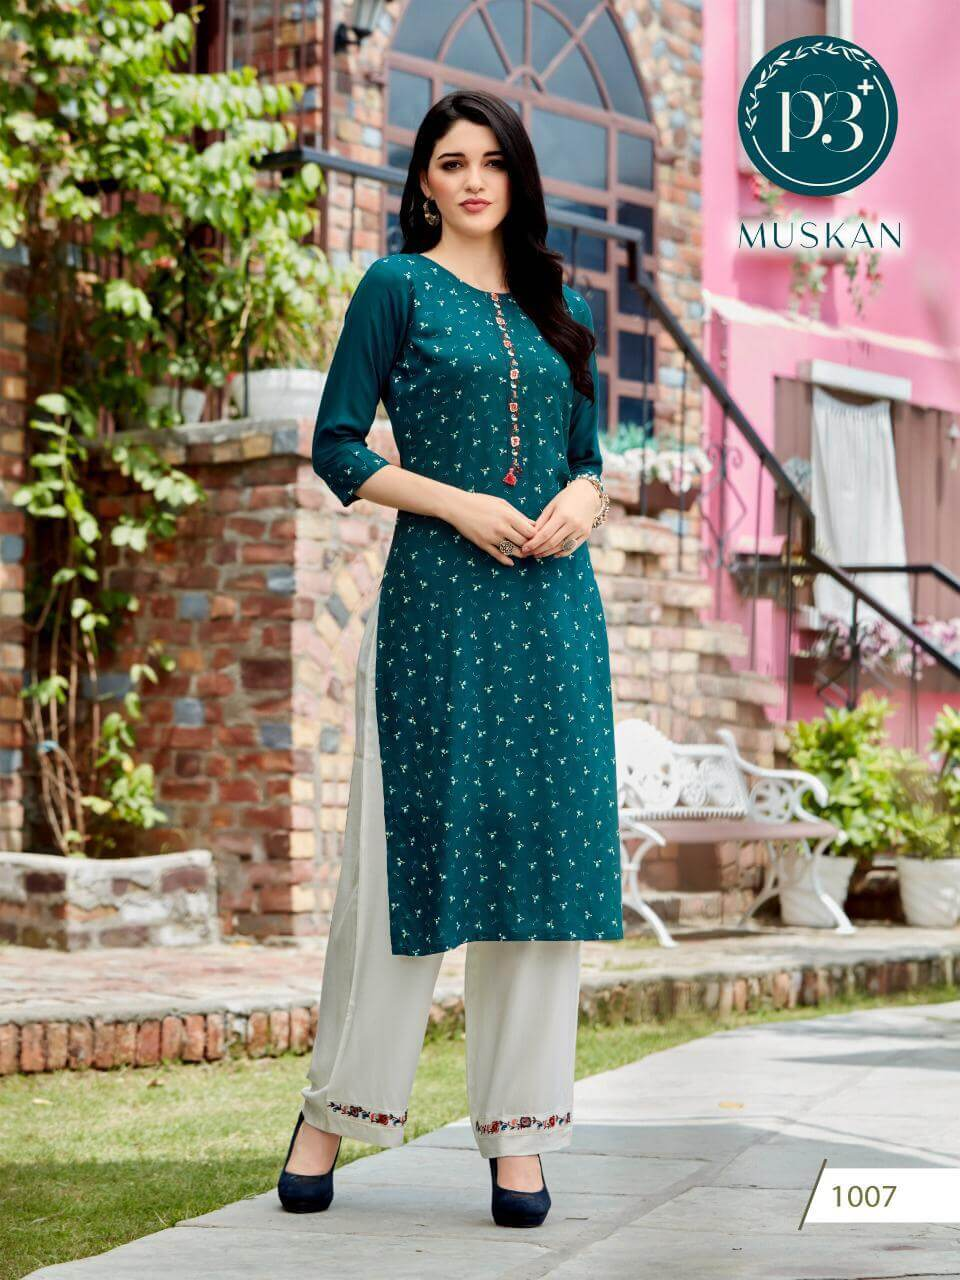 P3 Muskan collection 6